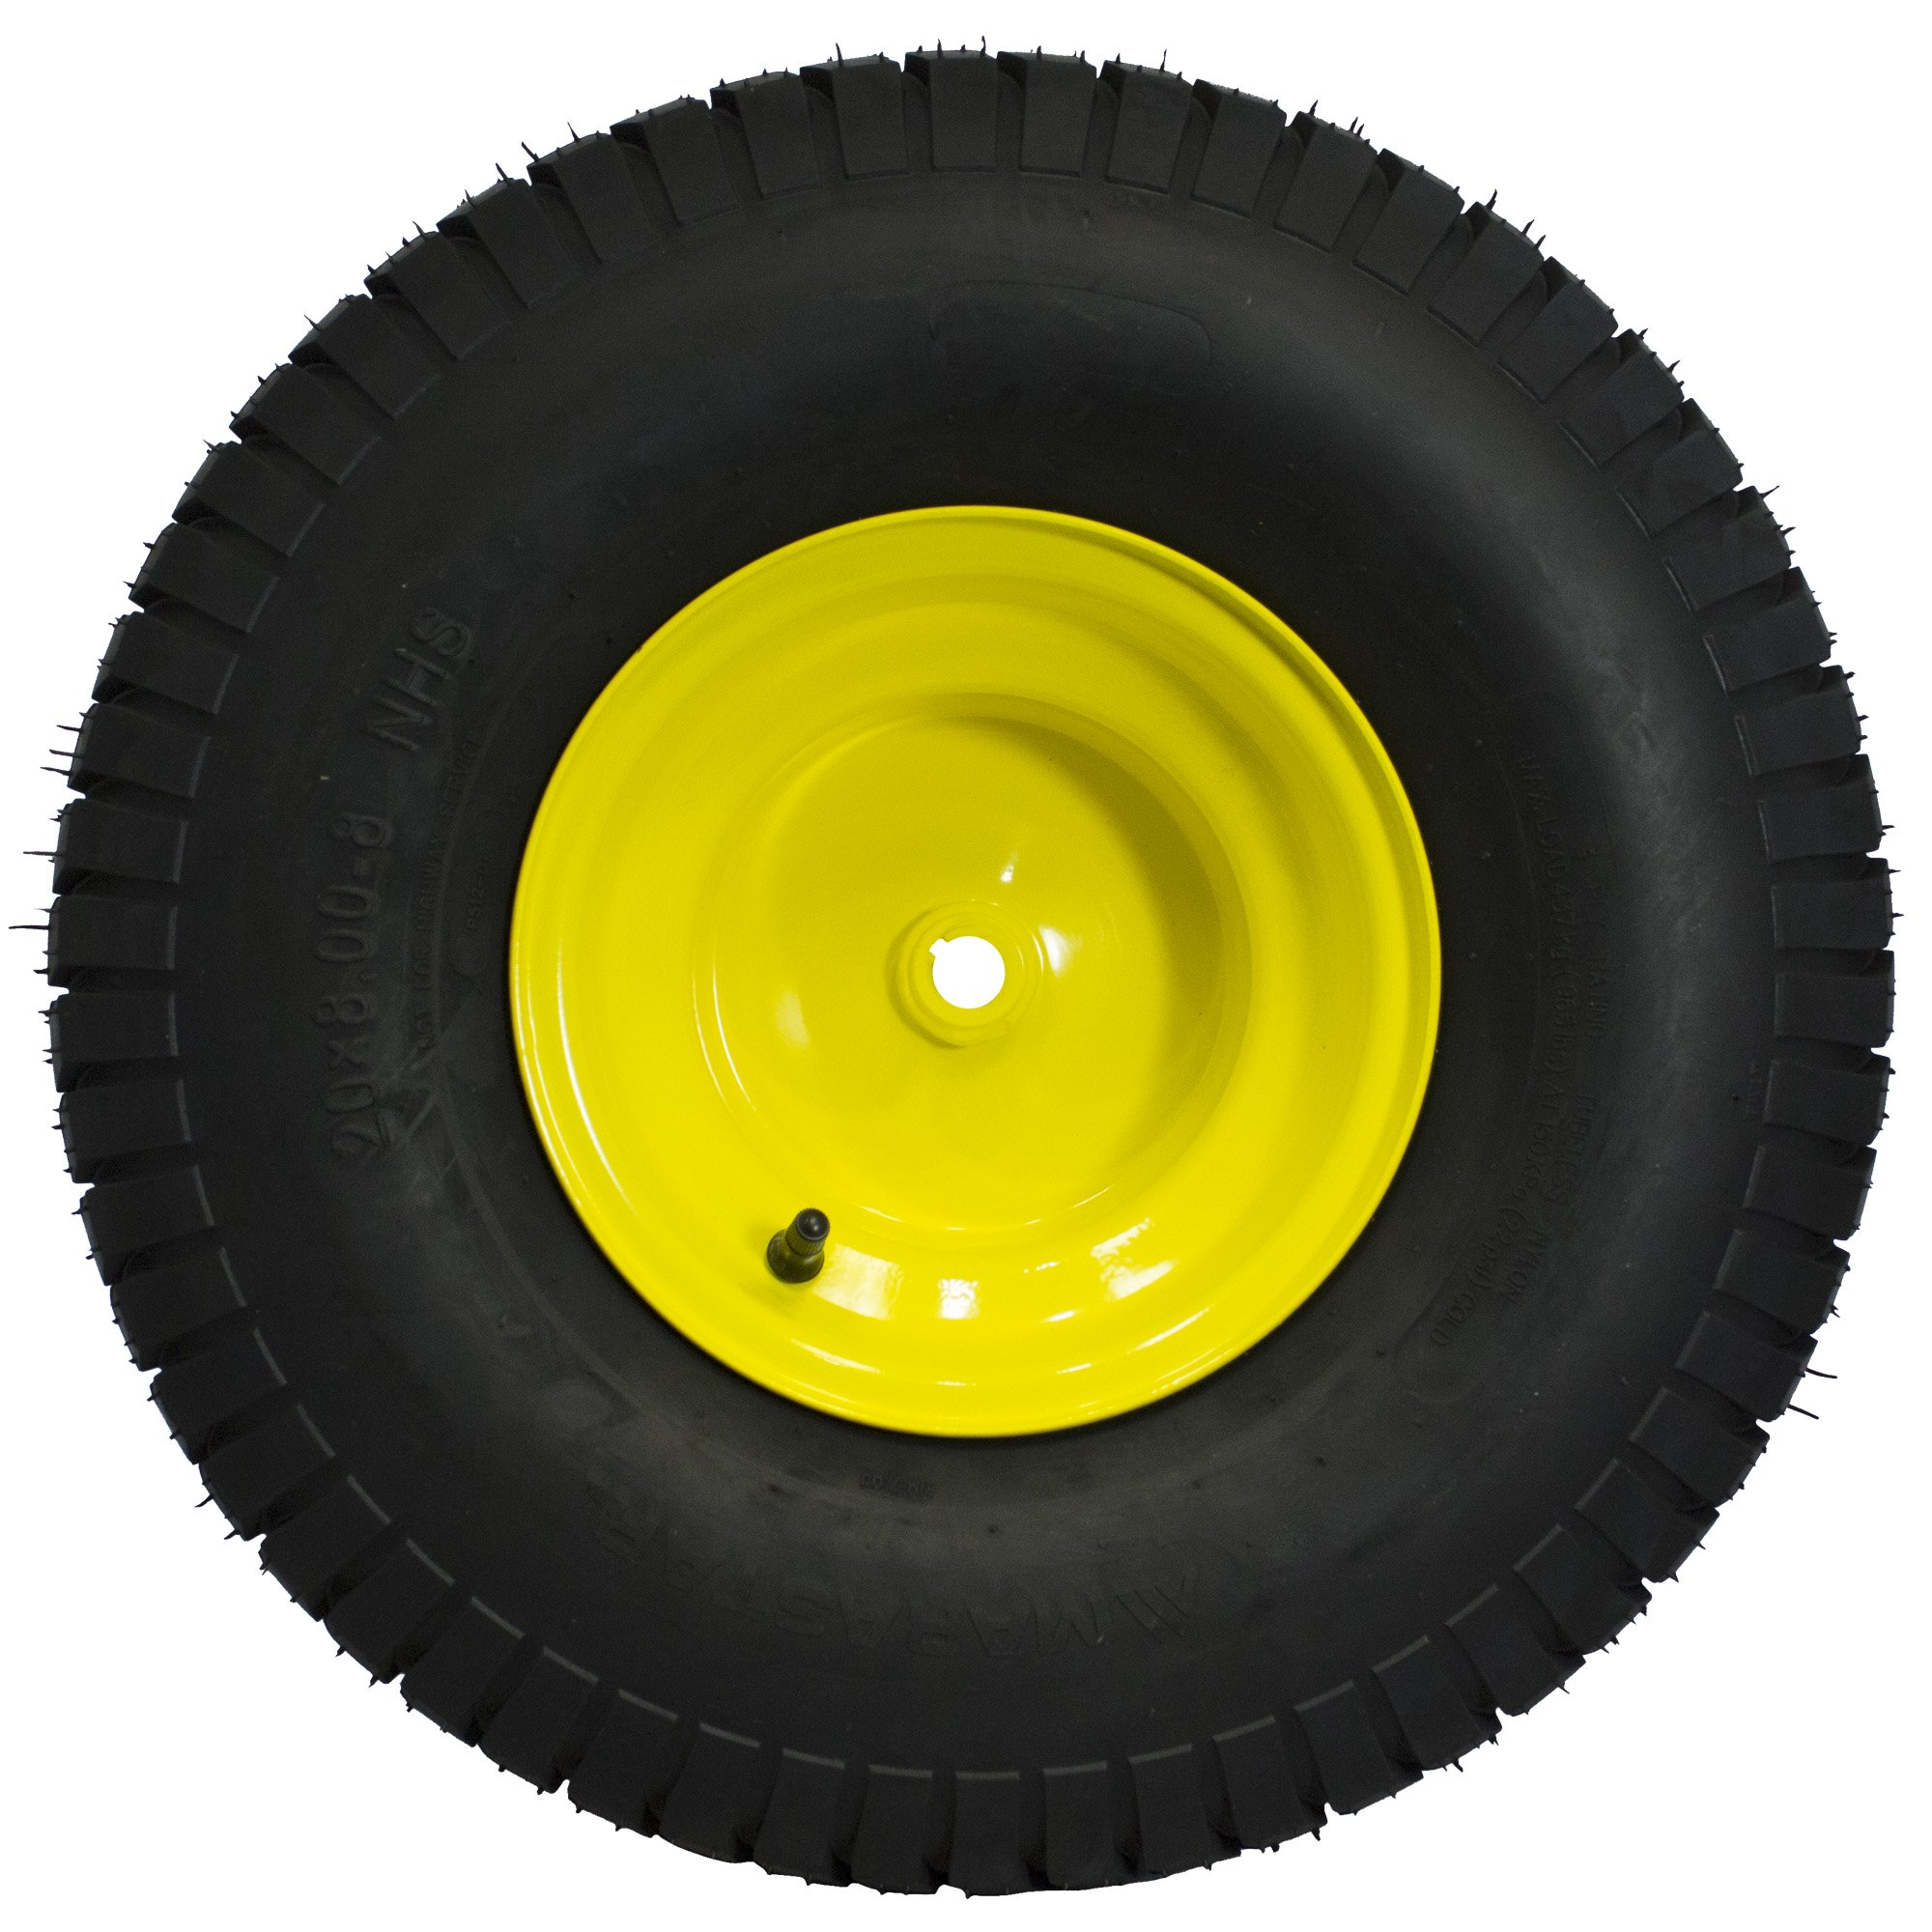 MARASTAR 21424 20X8.00-8 Rear Tire Assembly Replacement for John Deere Riding Mowers, Yellow by MARASTAR (Image #4)